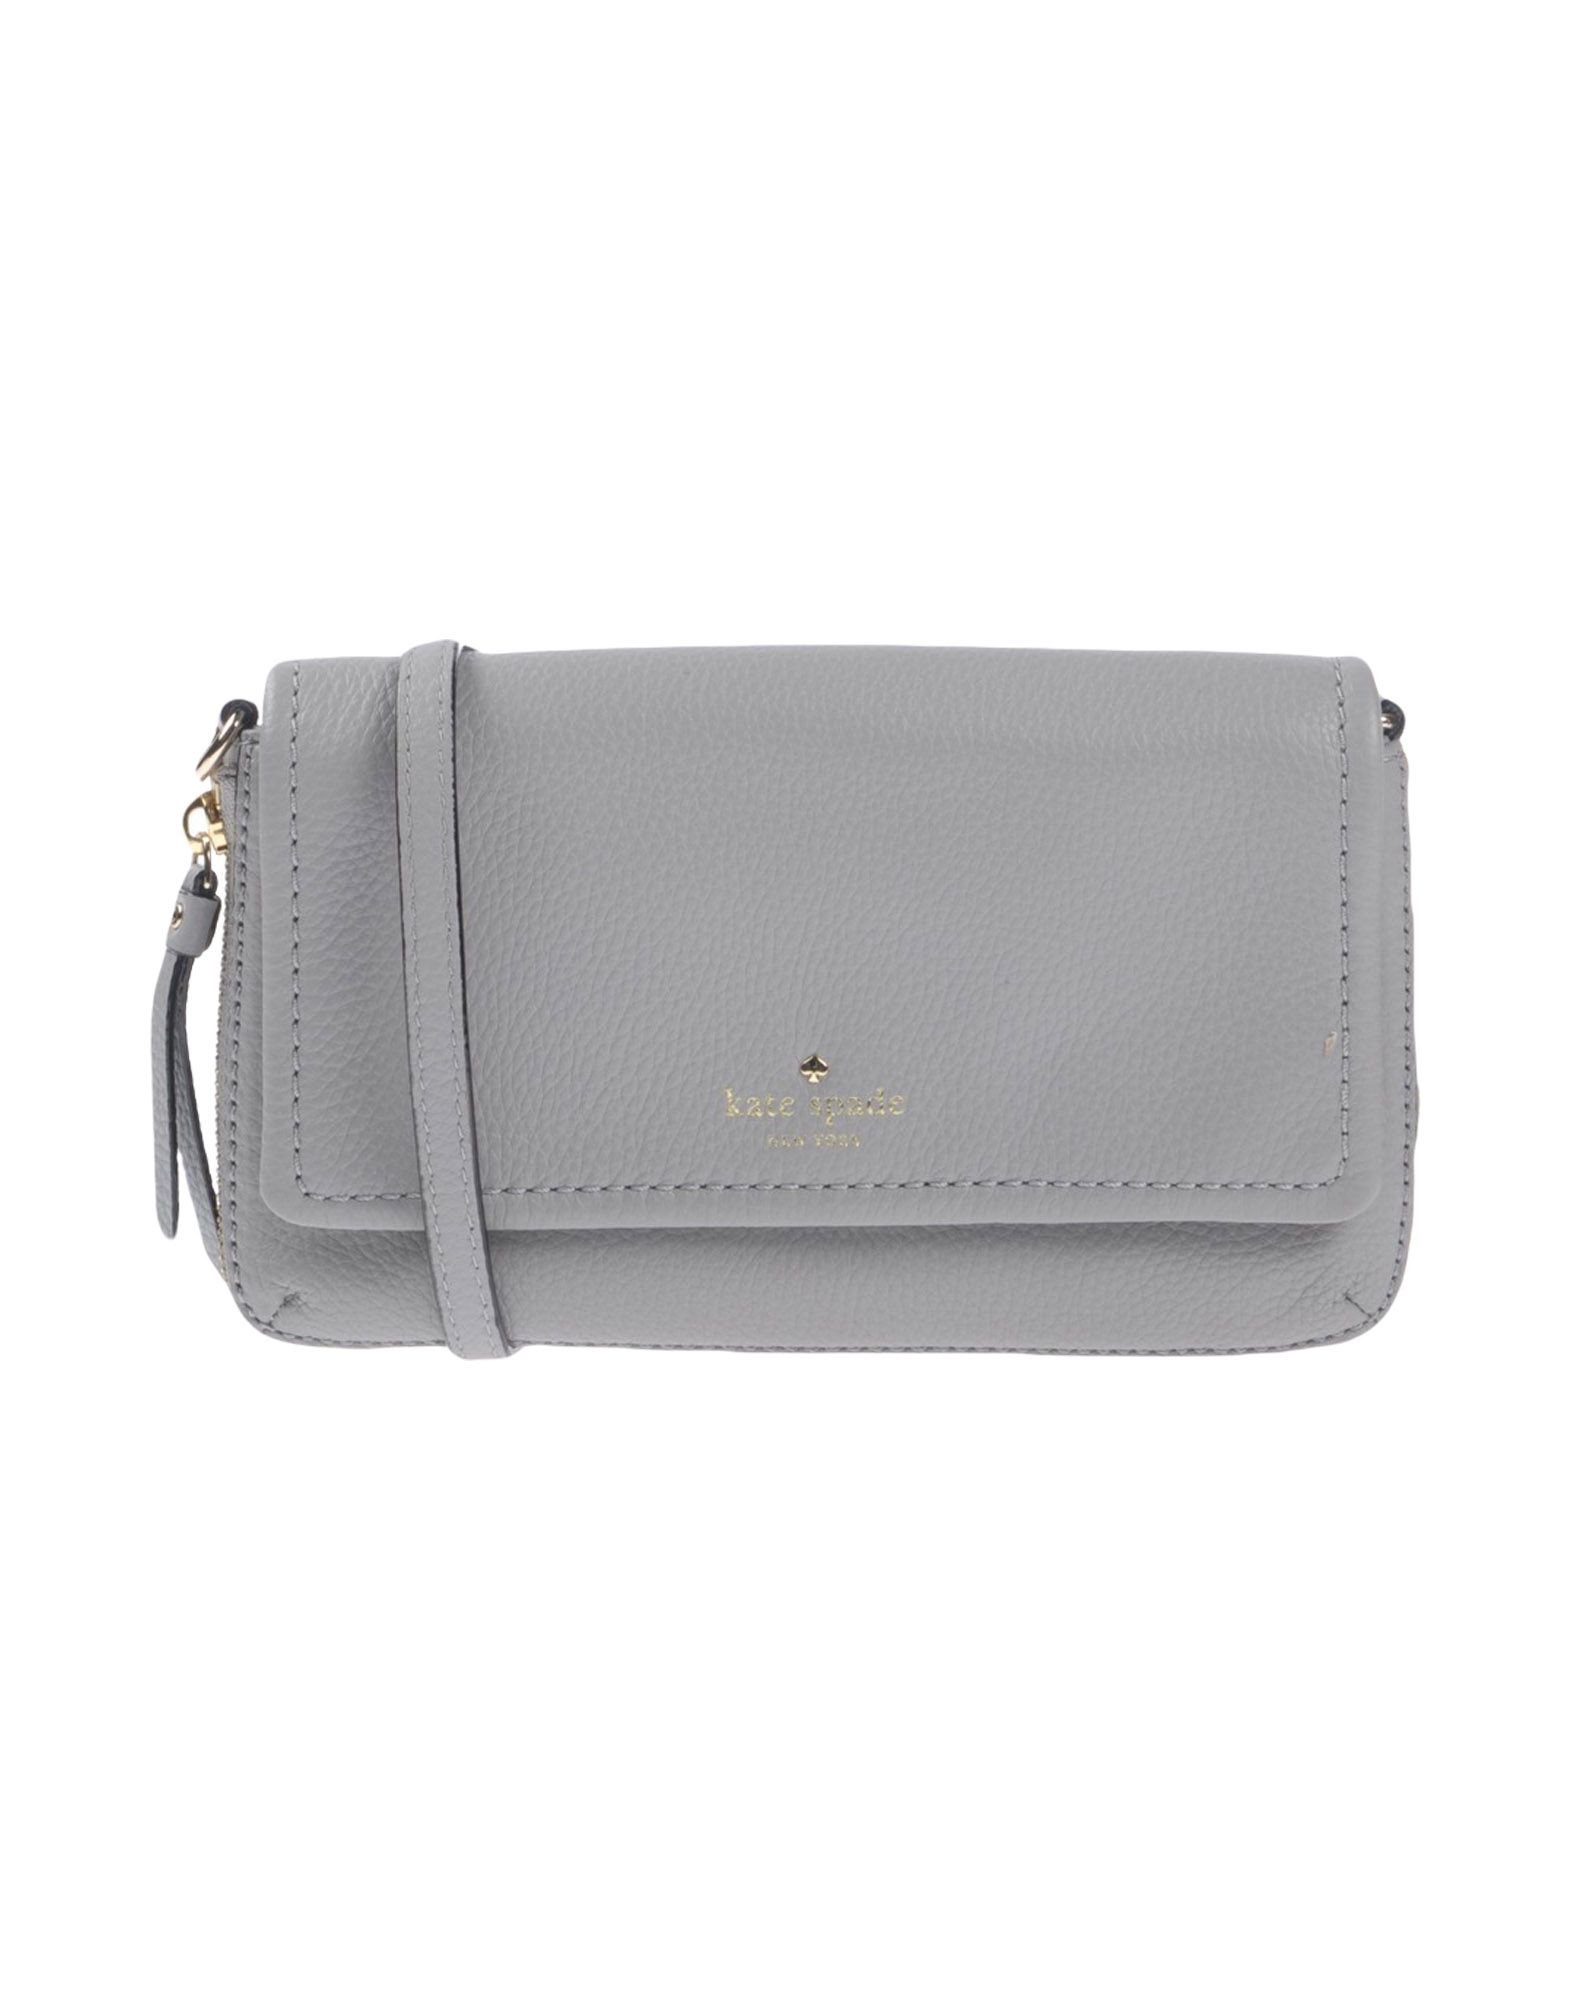 KATE SPADE New York Сумка через плечо сумка kate spade new york kate spade ny grove court small leslie